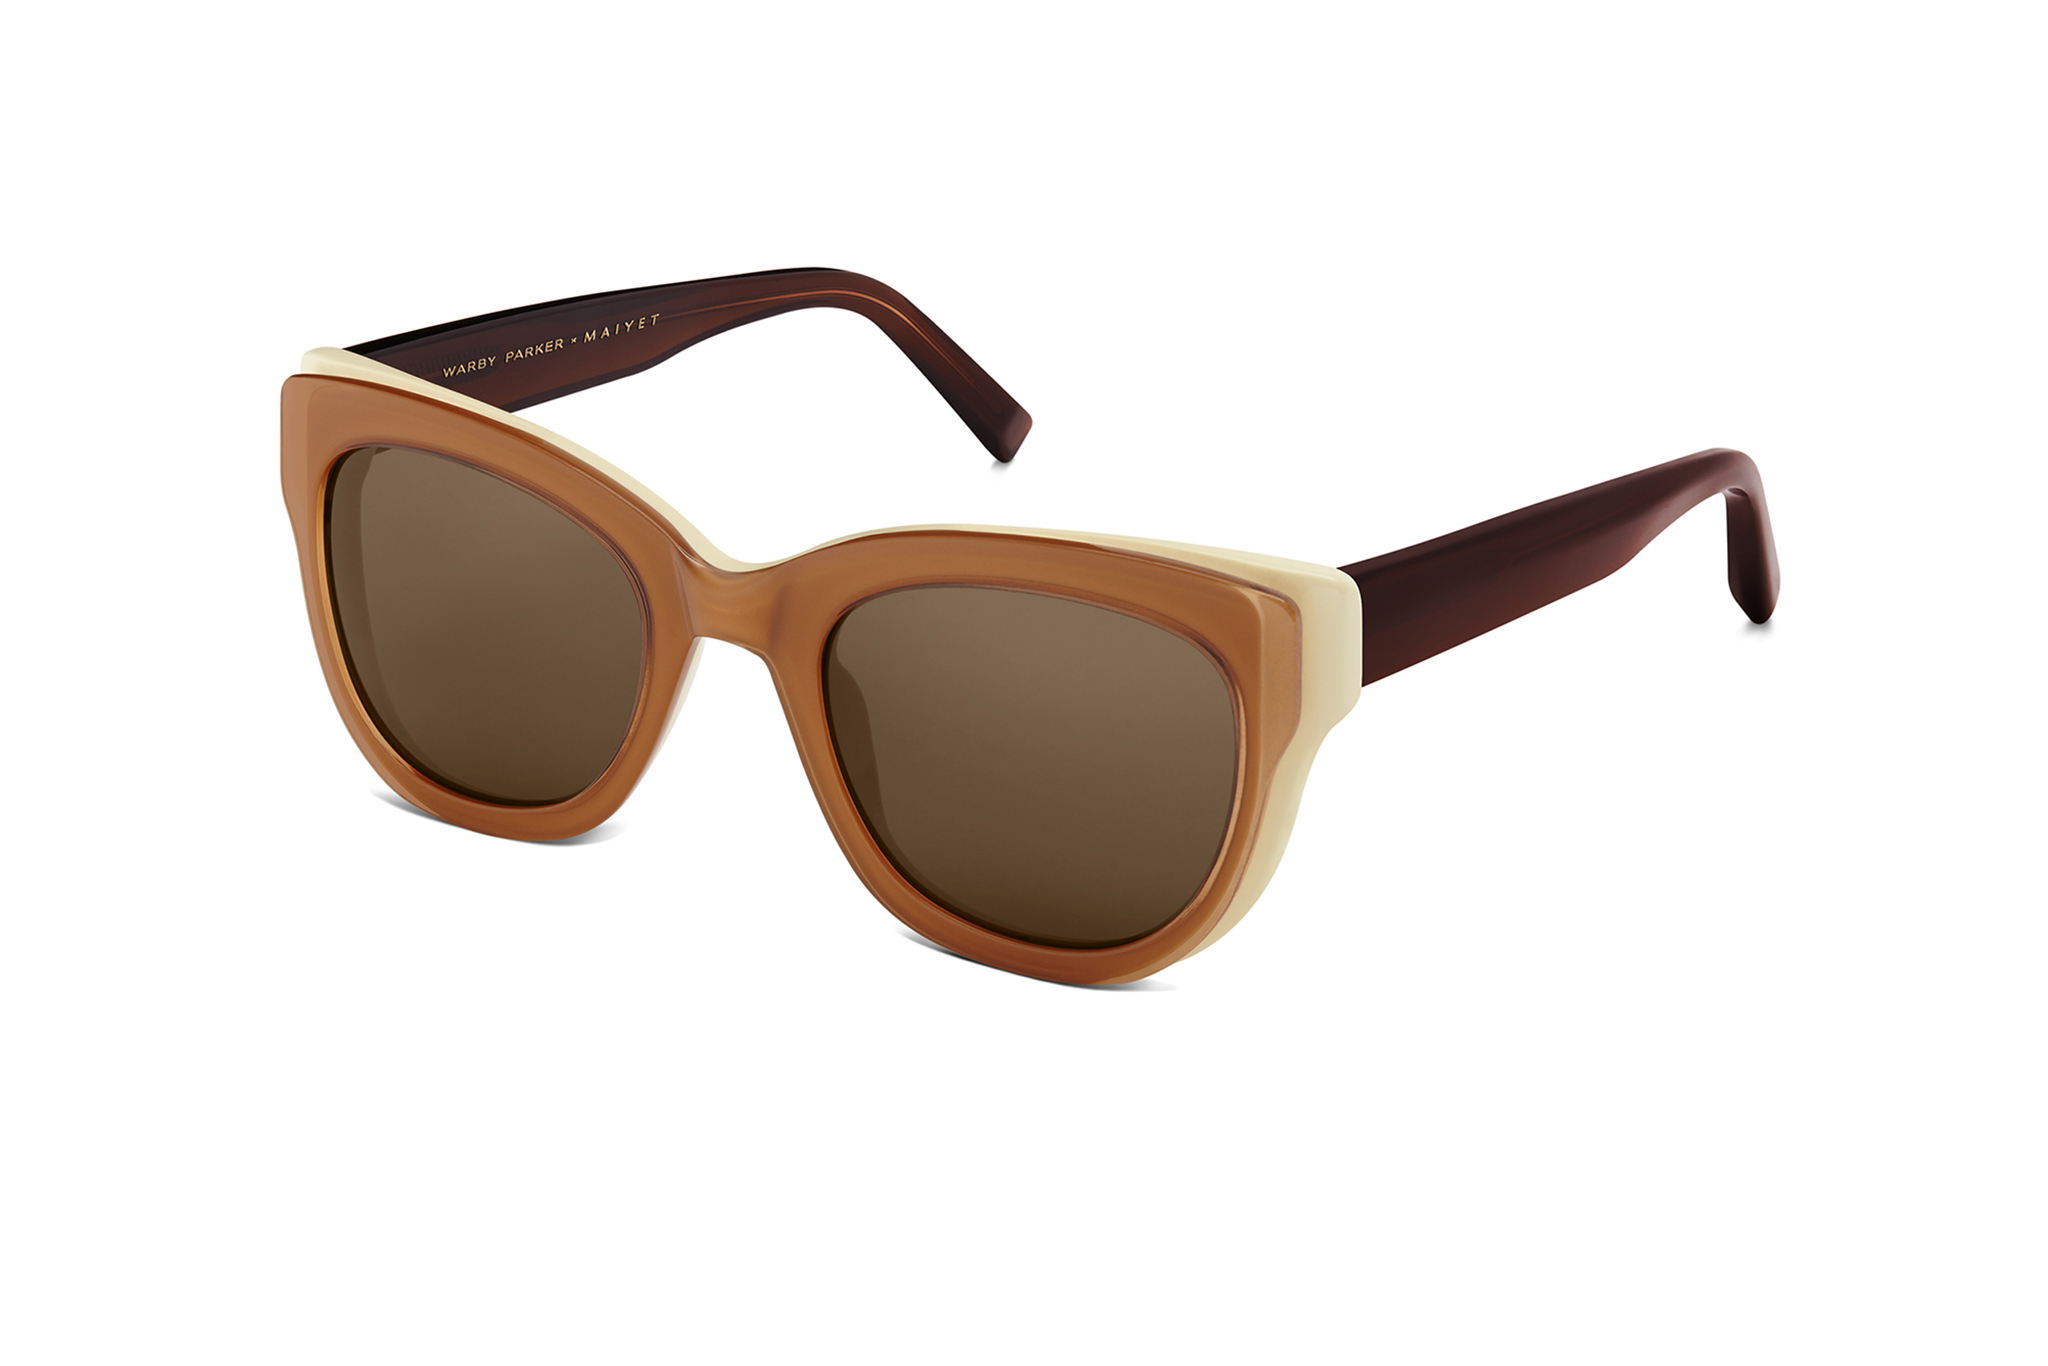 A pair of Warby Parker x Maiyet sunglasses.